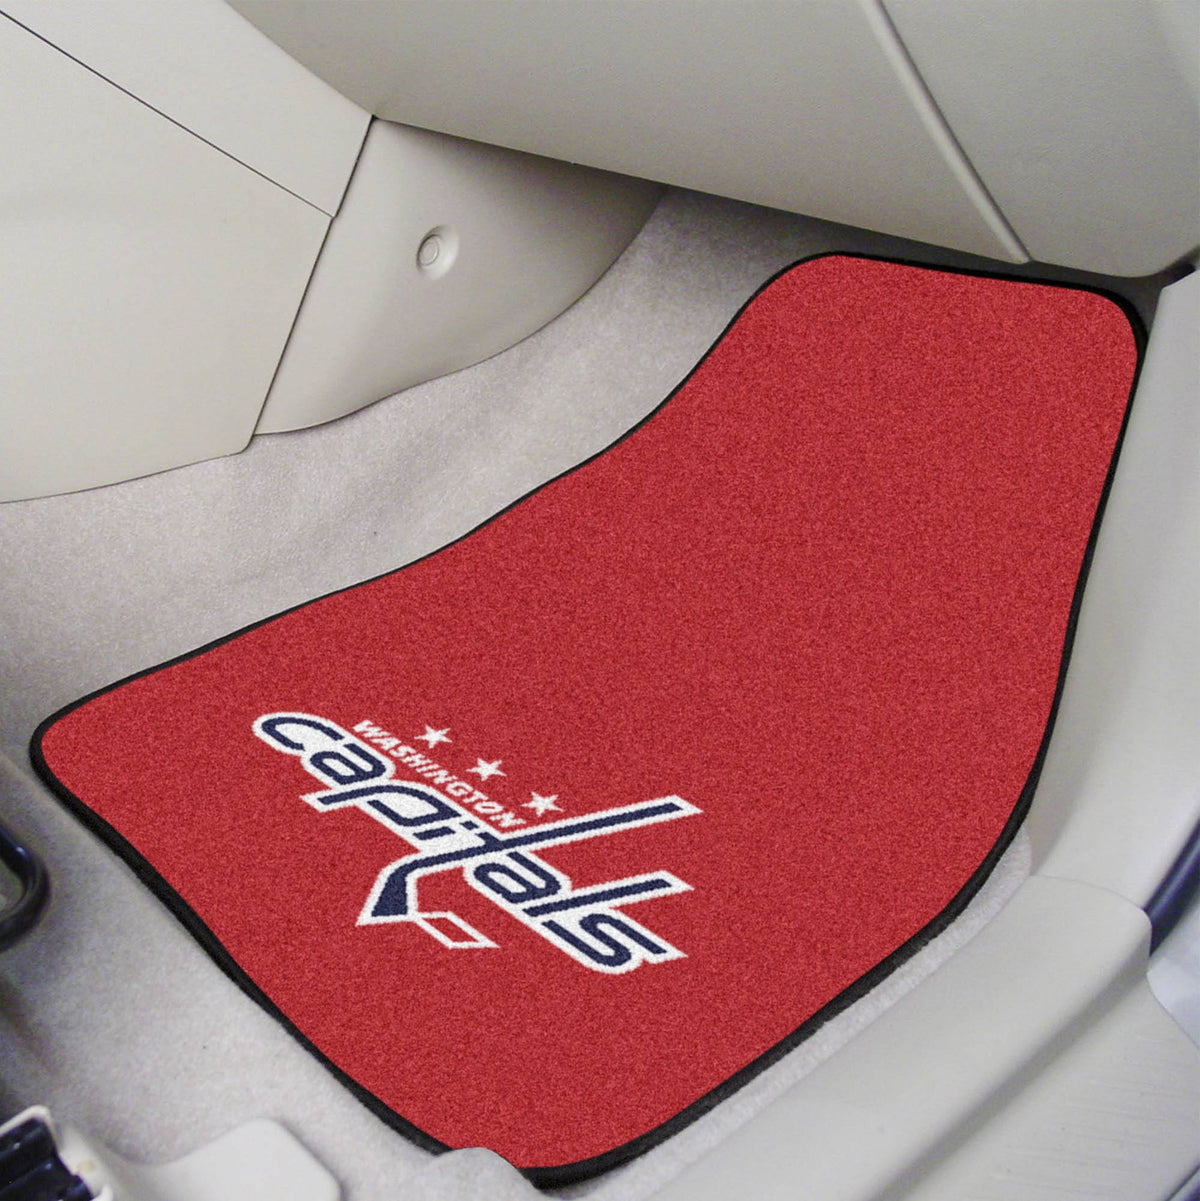 NHL - Carpet Car Mat, 2-Piece Set NHL Mats, Front Car Mats, 2-pc Carpet Car Mat Set, NHL, Auto Fan Mats Washington Capitals